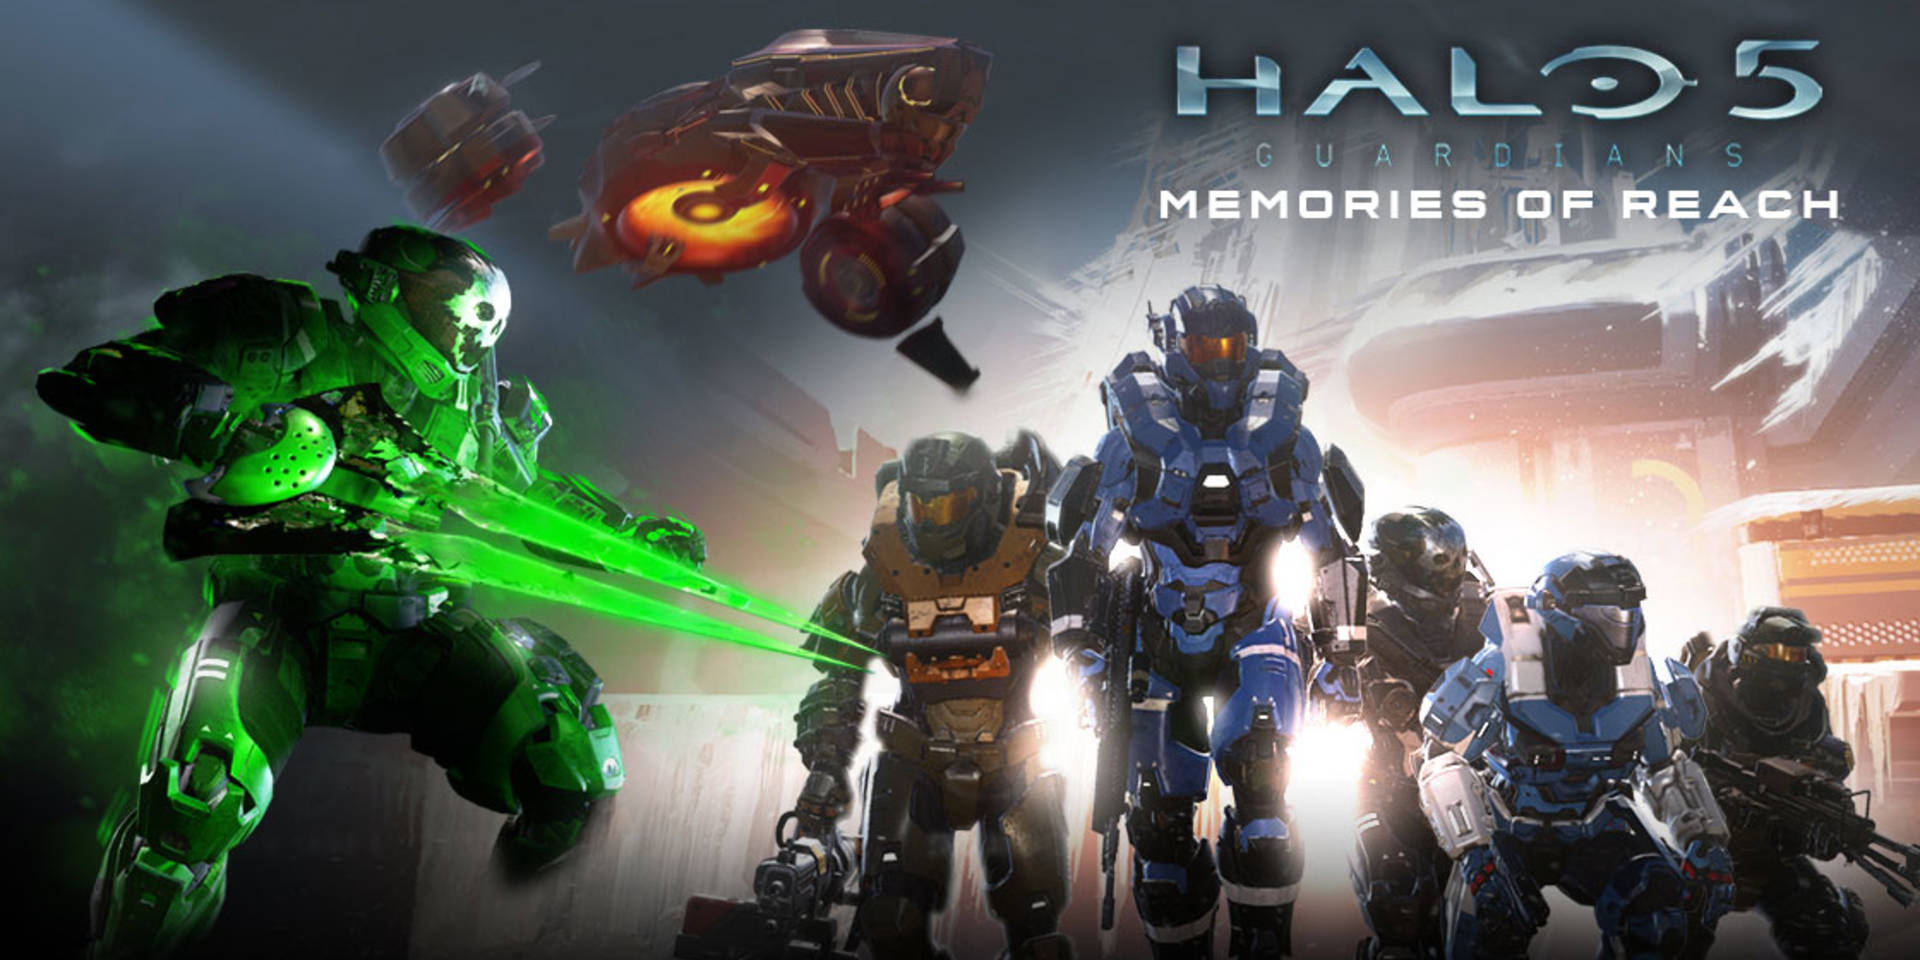 Memories of Reach expansion now available for Halo 5